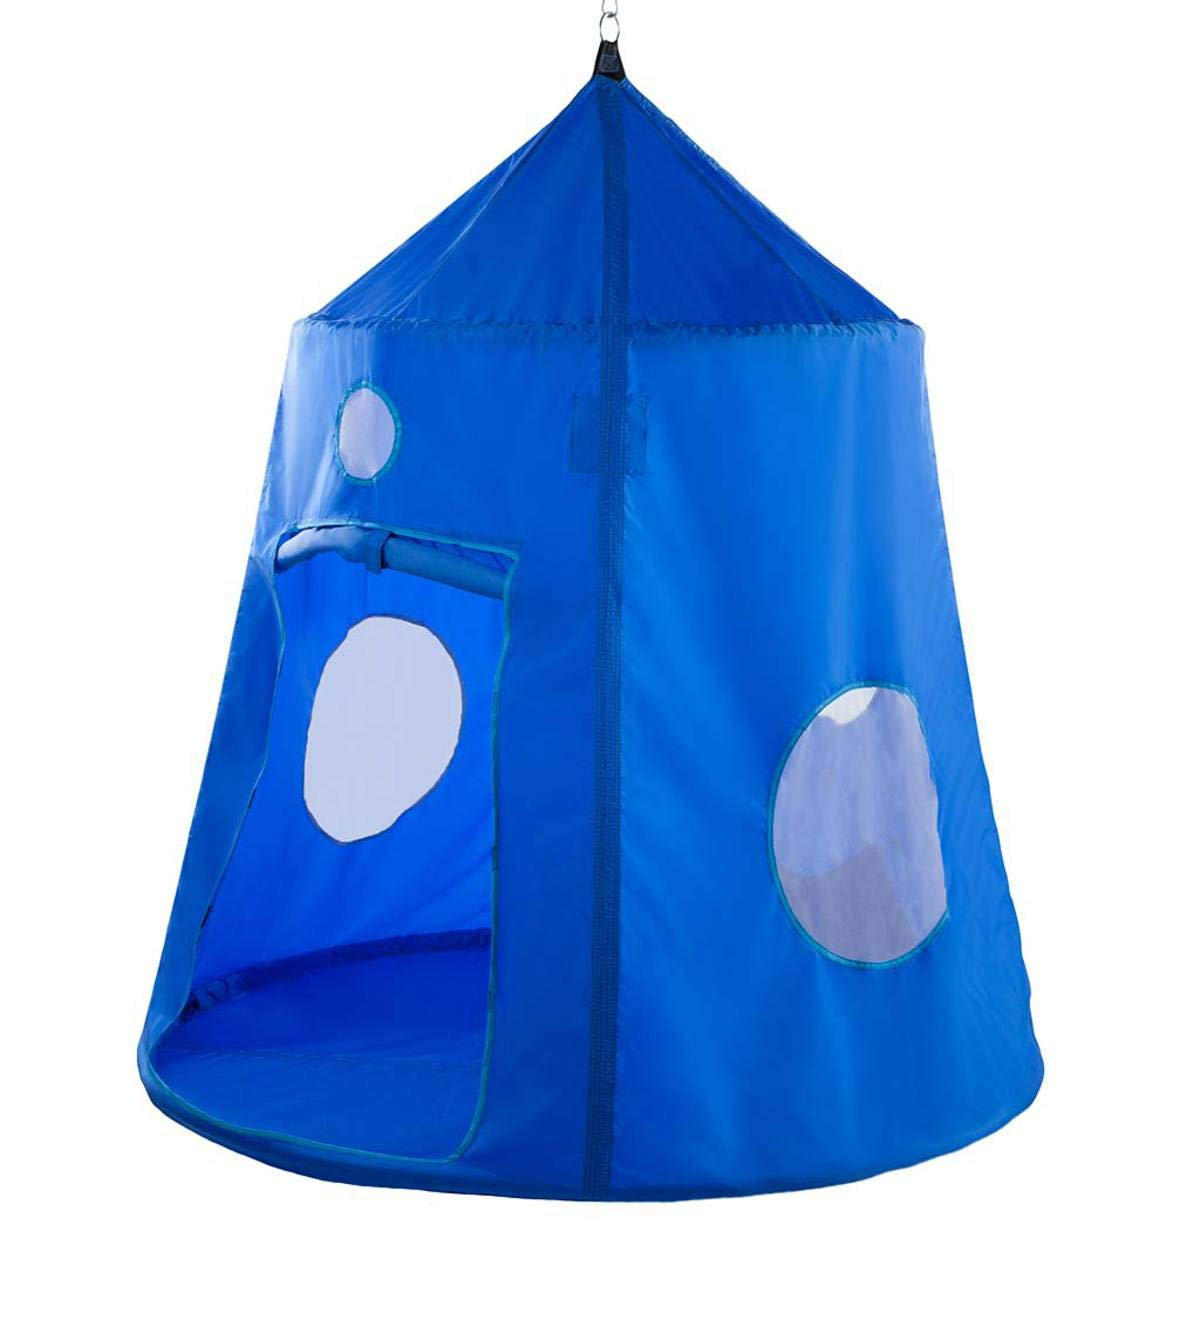 HearthSong® Nylon Family HugglePod Hangout Hanging Tree or Ceiling Play Tent - Indoor or Outdoor Use - Portable - 78 H x 60.5 Diam - Blue by HearthSong® (Image #1)